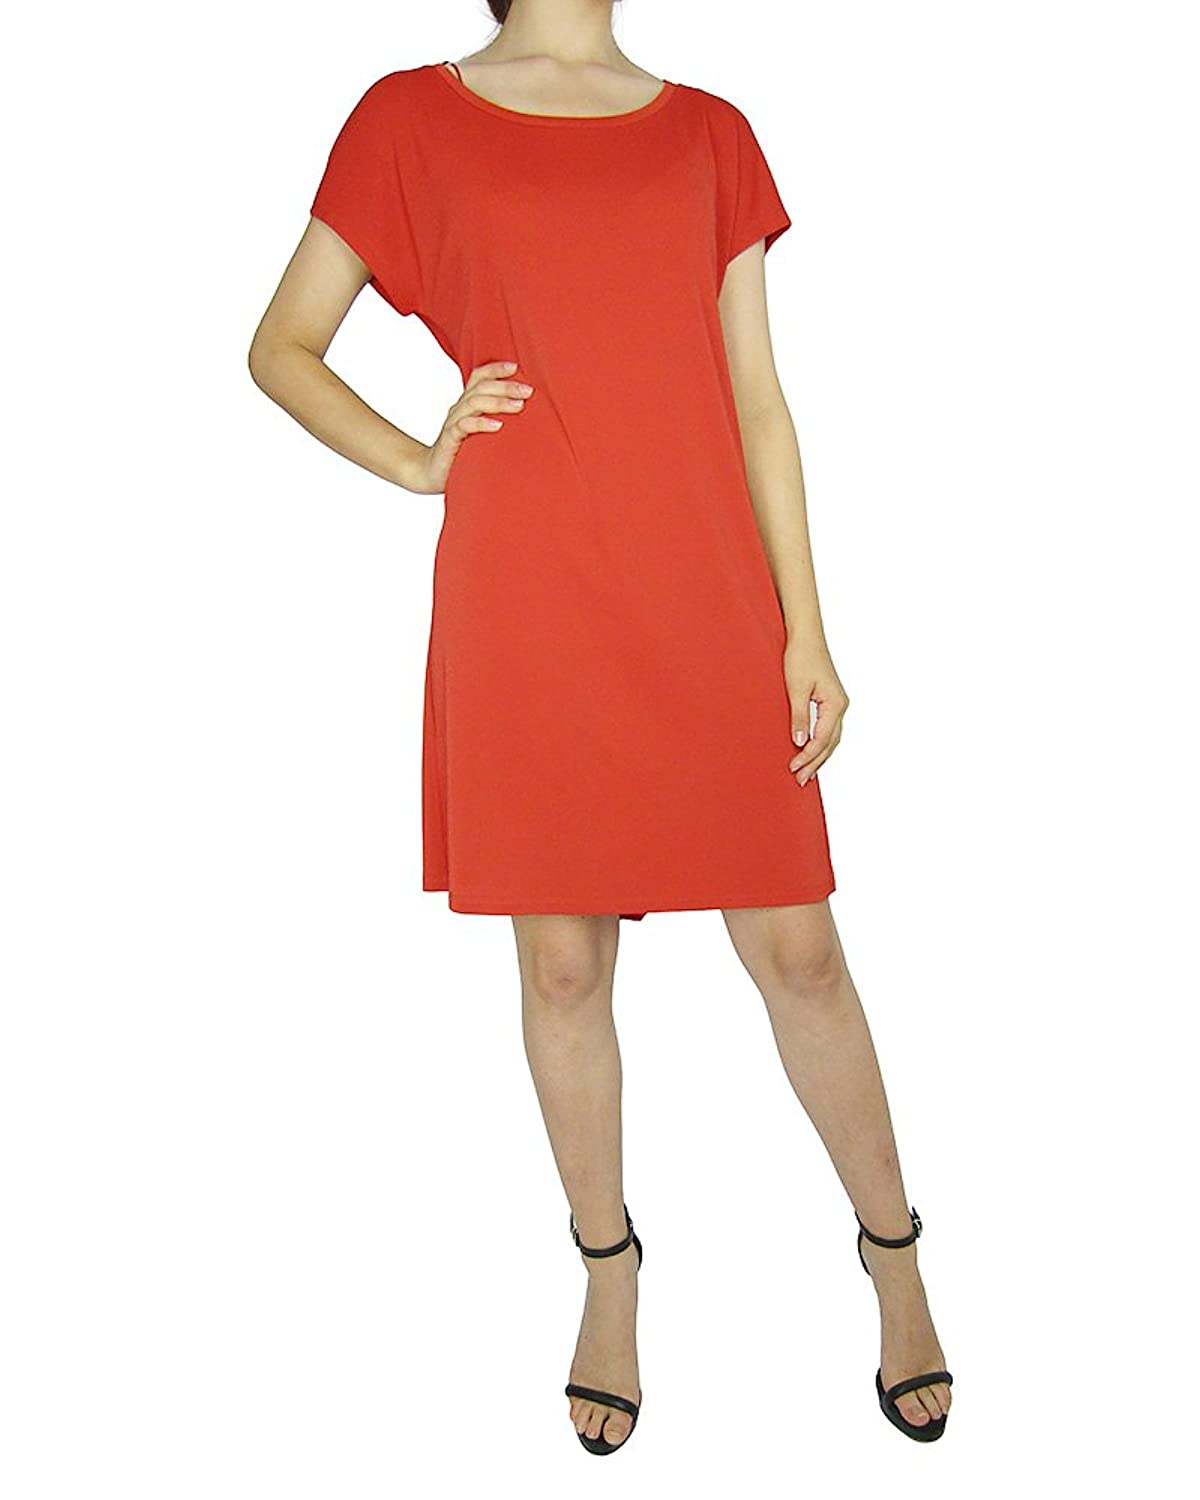 Alice By Temperley Dark Orange Fashionable Cotton Tunic use in all season UK8/US4 for Womens